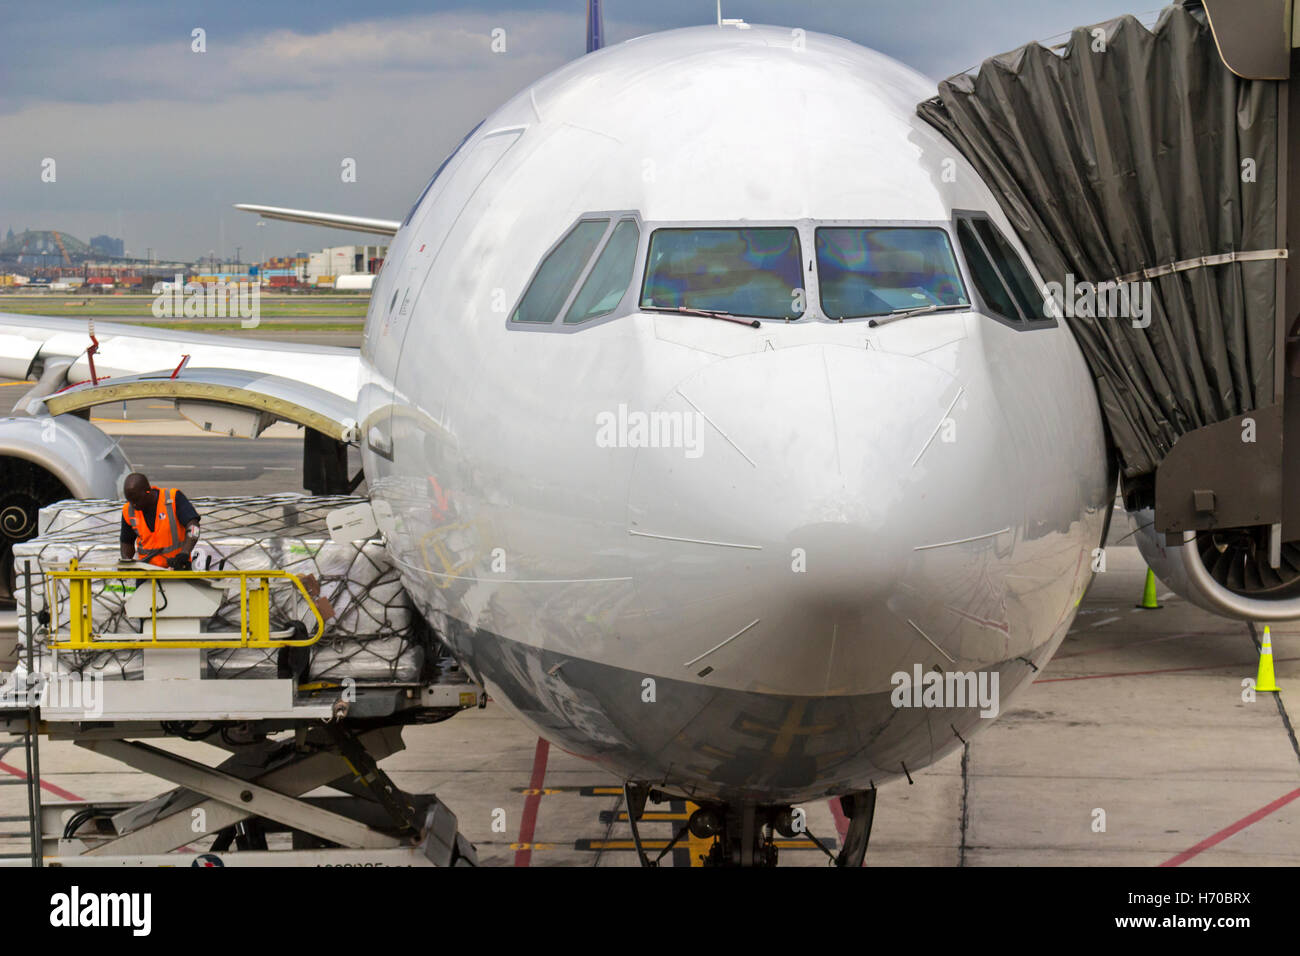 Commercial Jet being prepared for takeoff on runway. - Stock Image